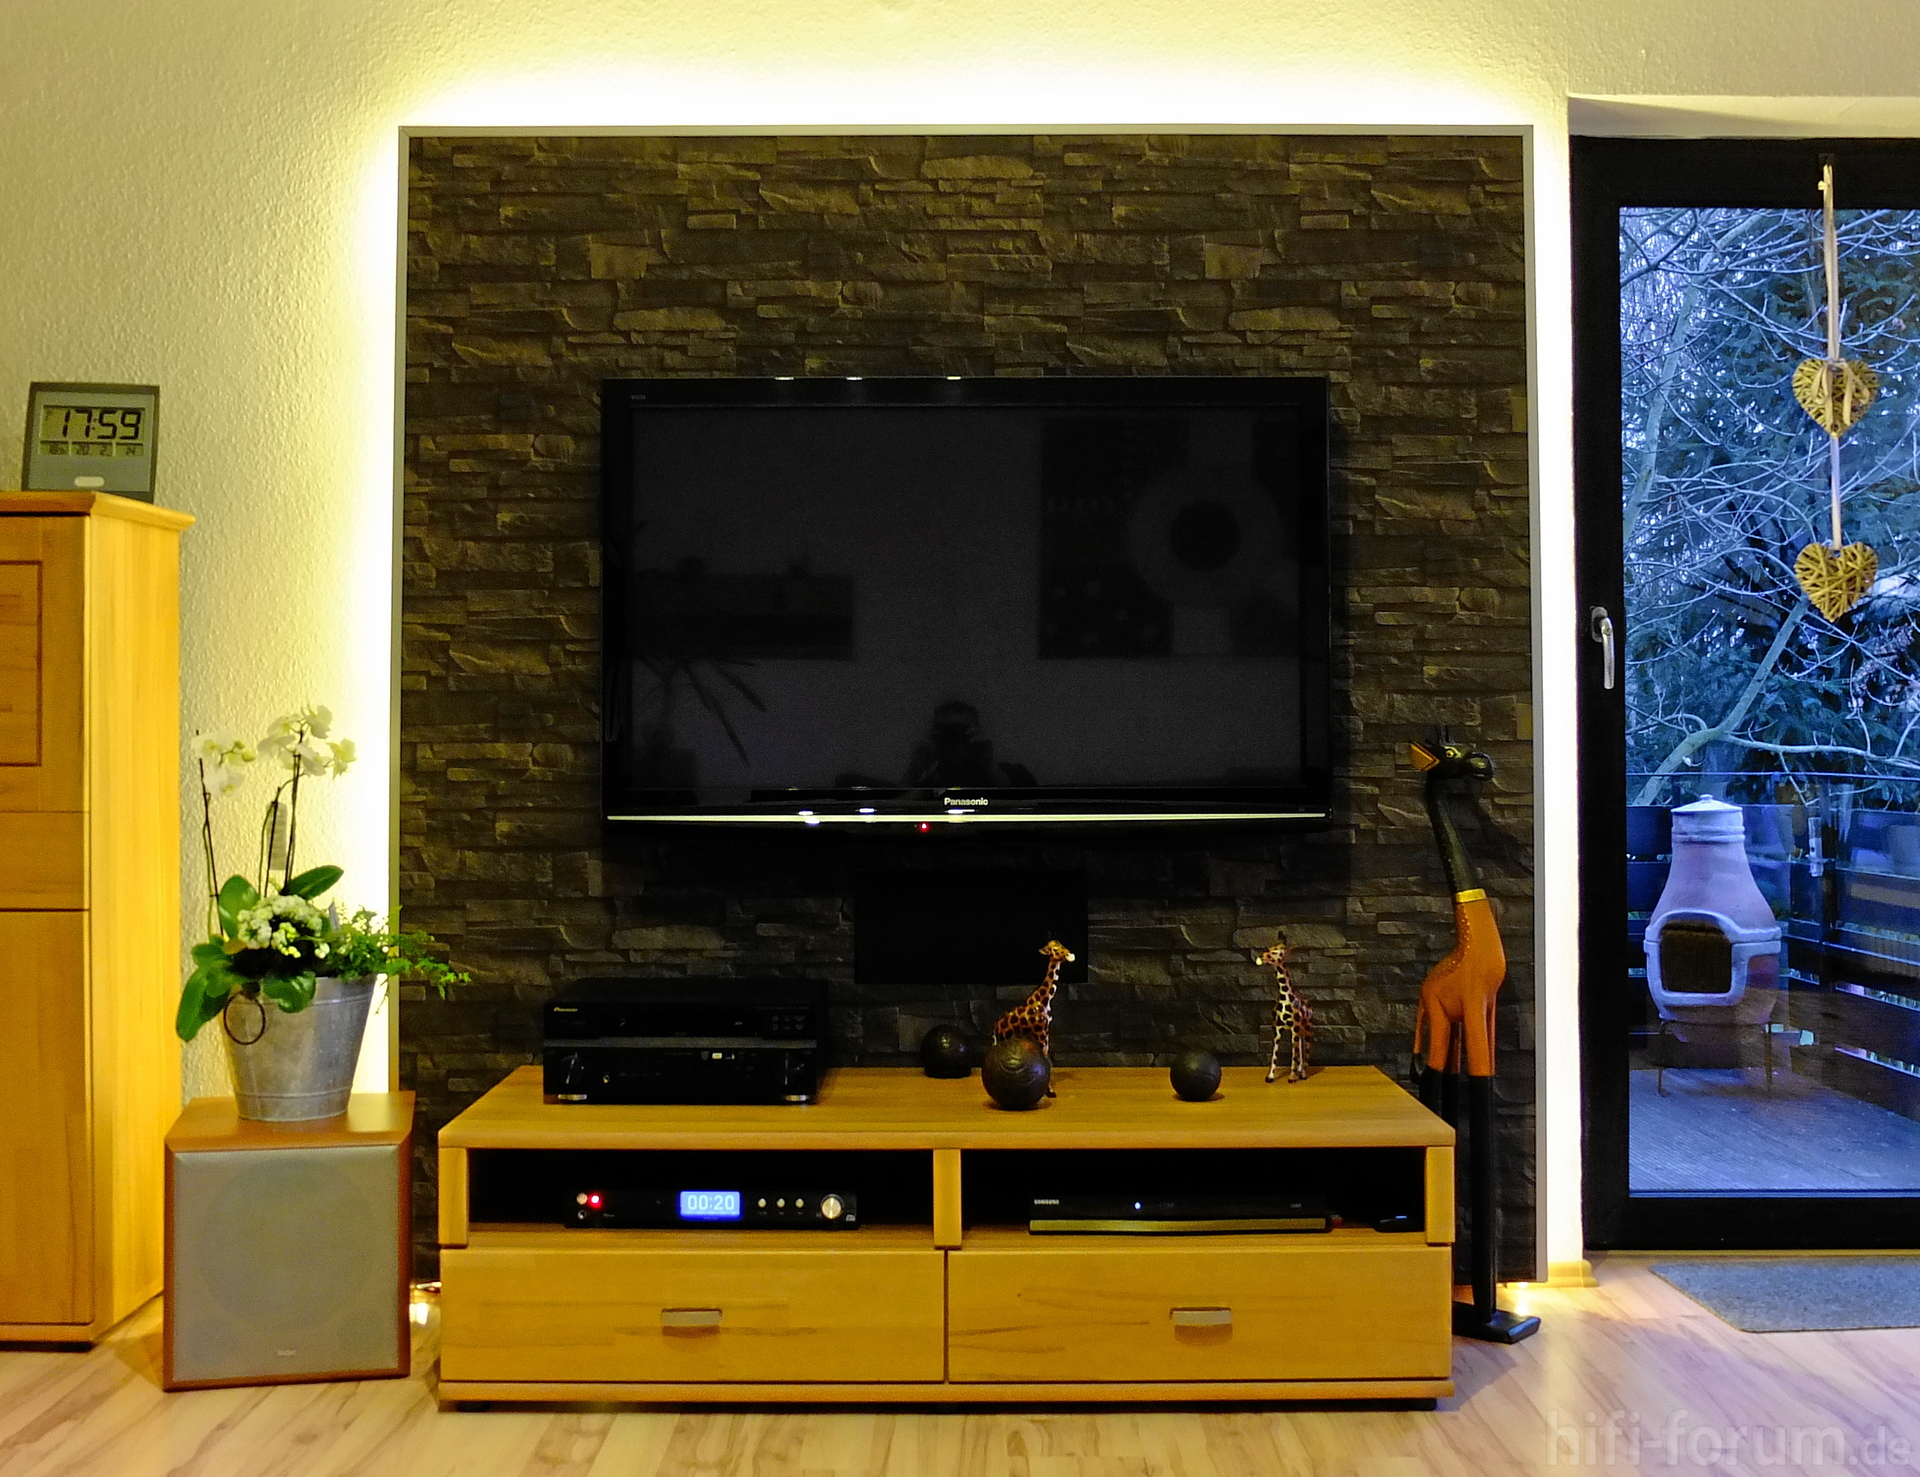 wand tv driver software m bel design idee f r sie. Black Bedroom Furniture Sets. Home Design Ideas